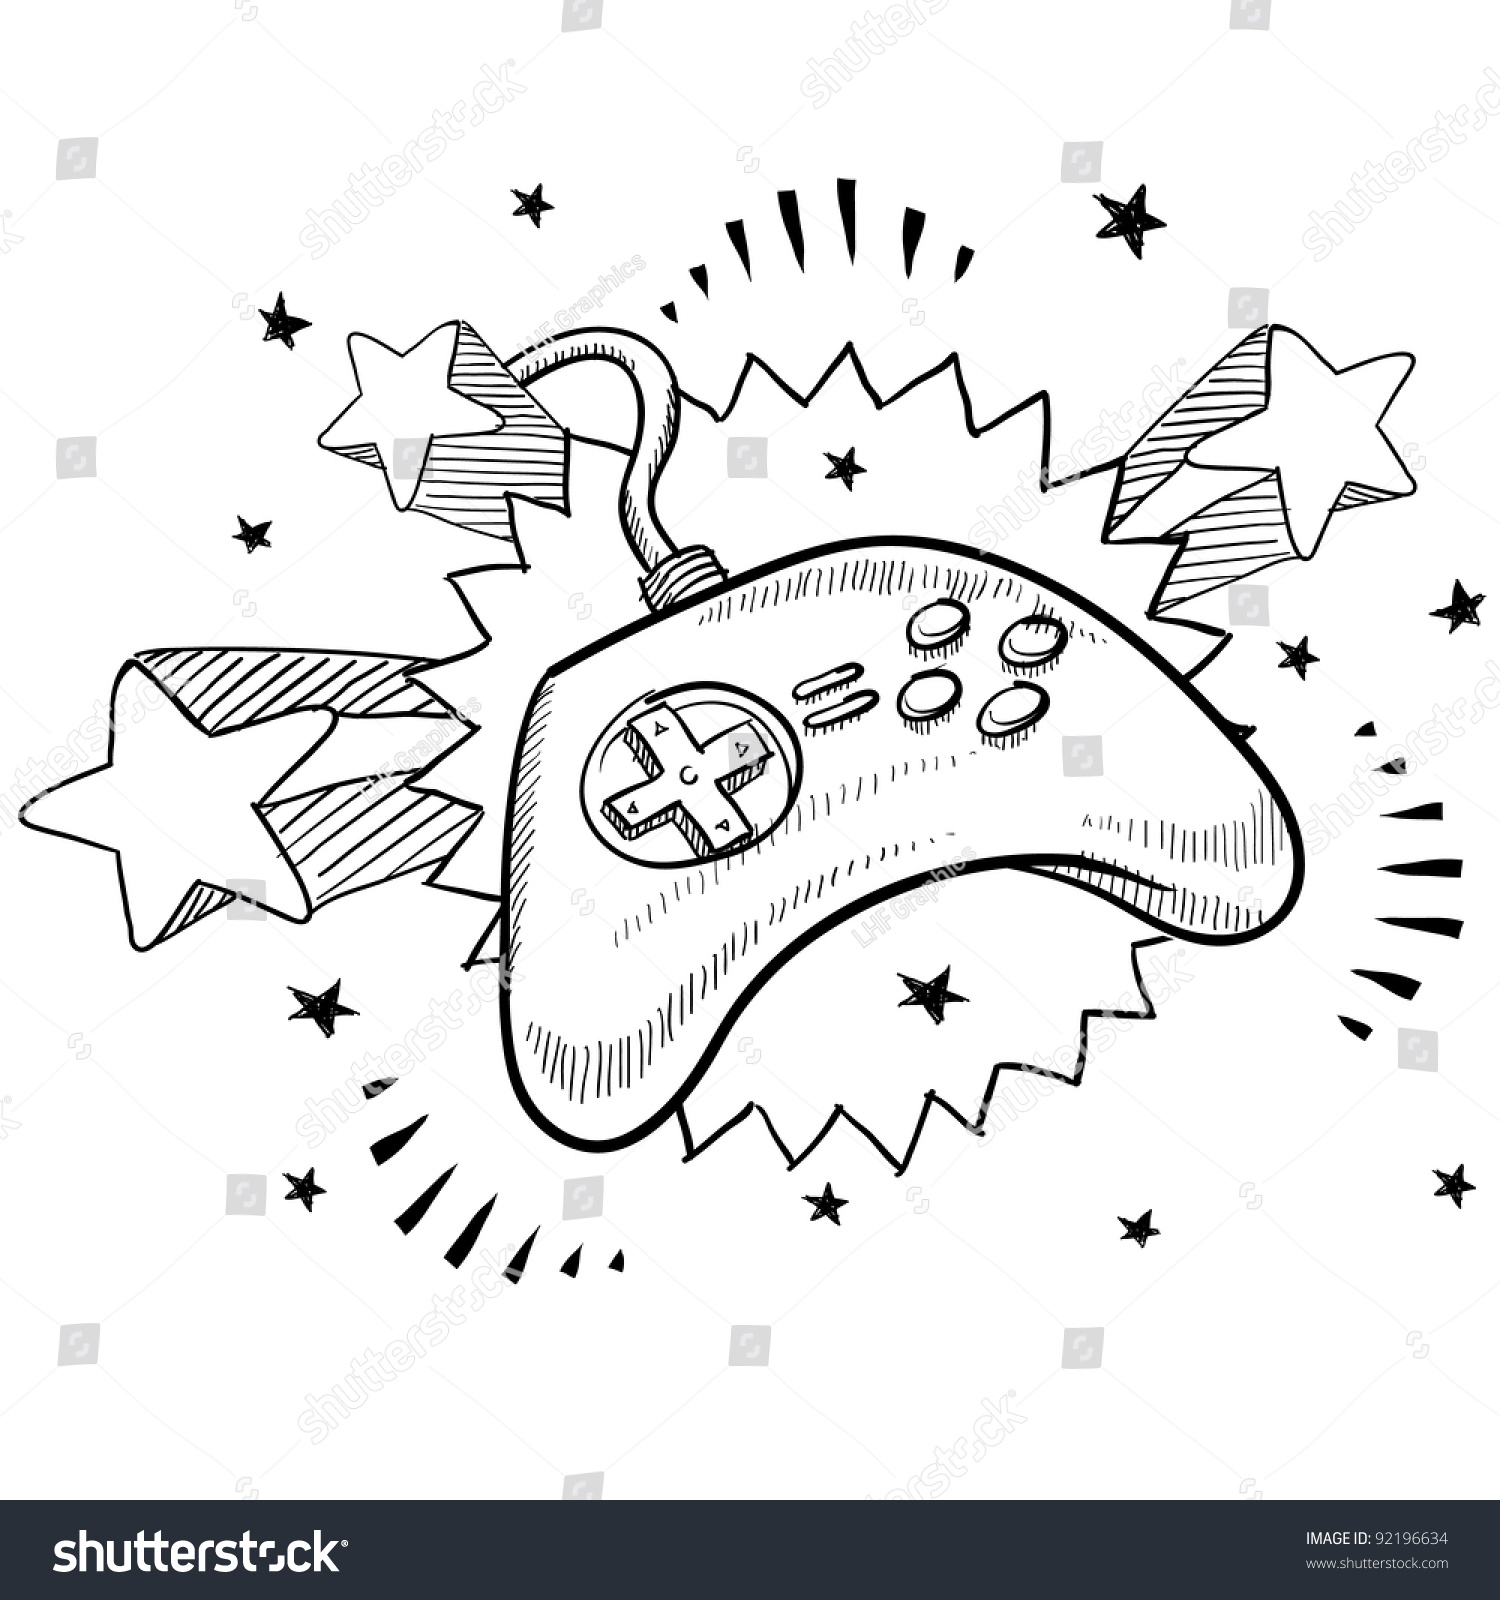 doodle style video game controller illustration stock vector 1970s Computer Games doodle style video game controller illustration in vector format with retro 1970s pop background